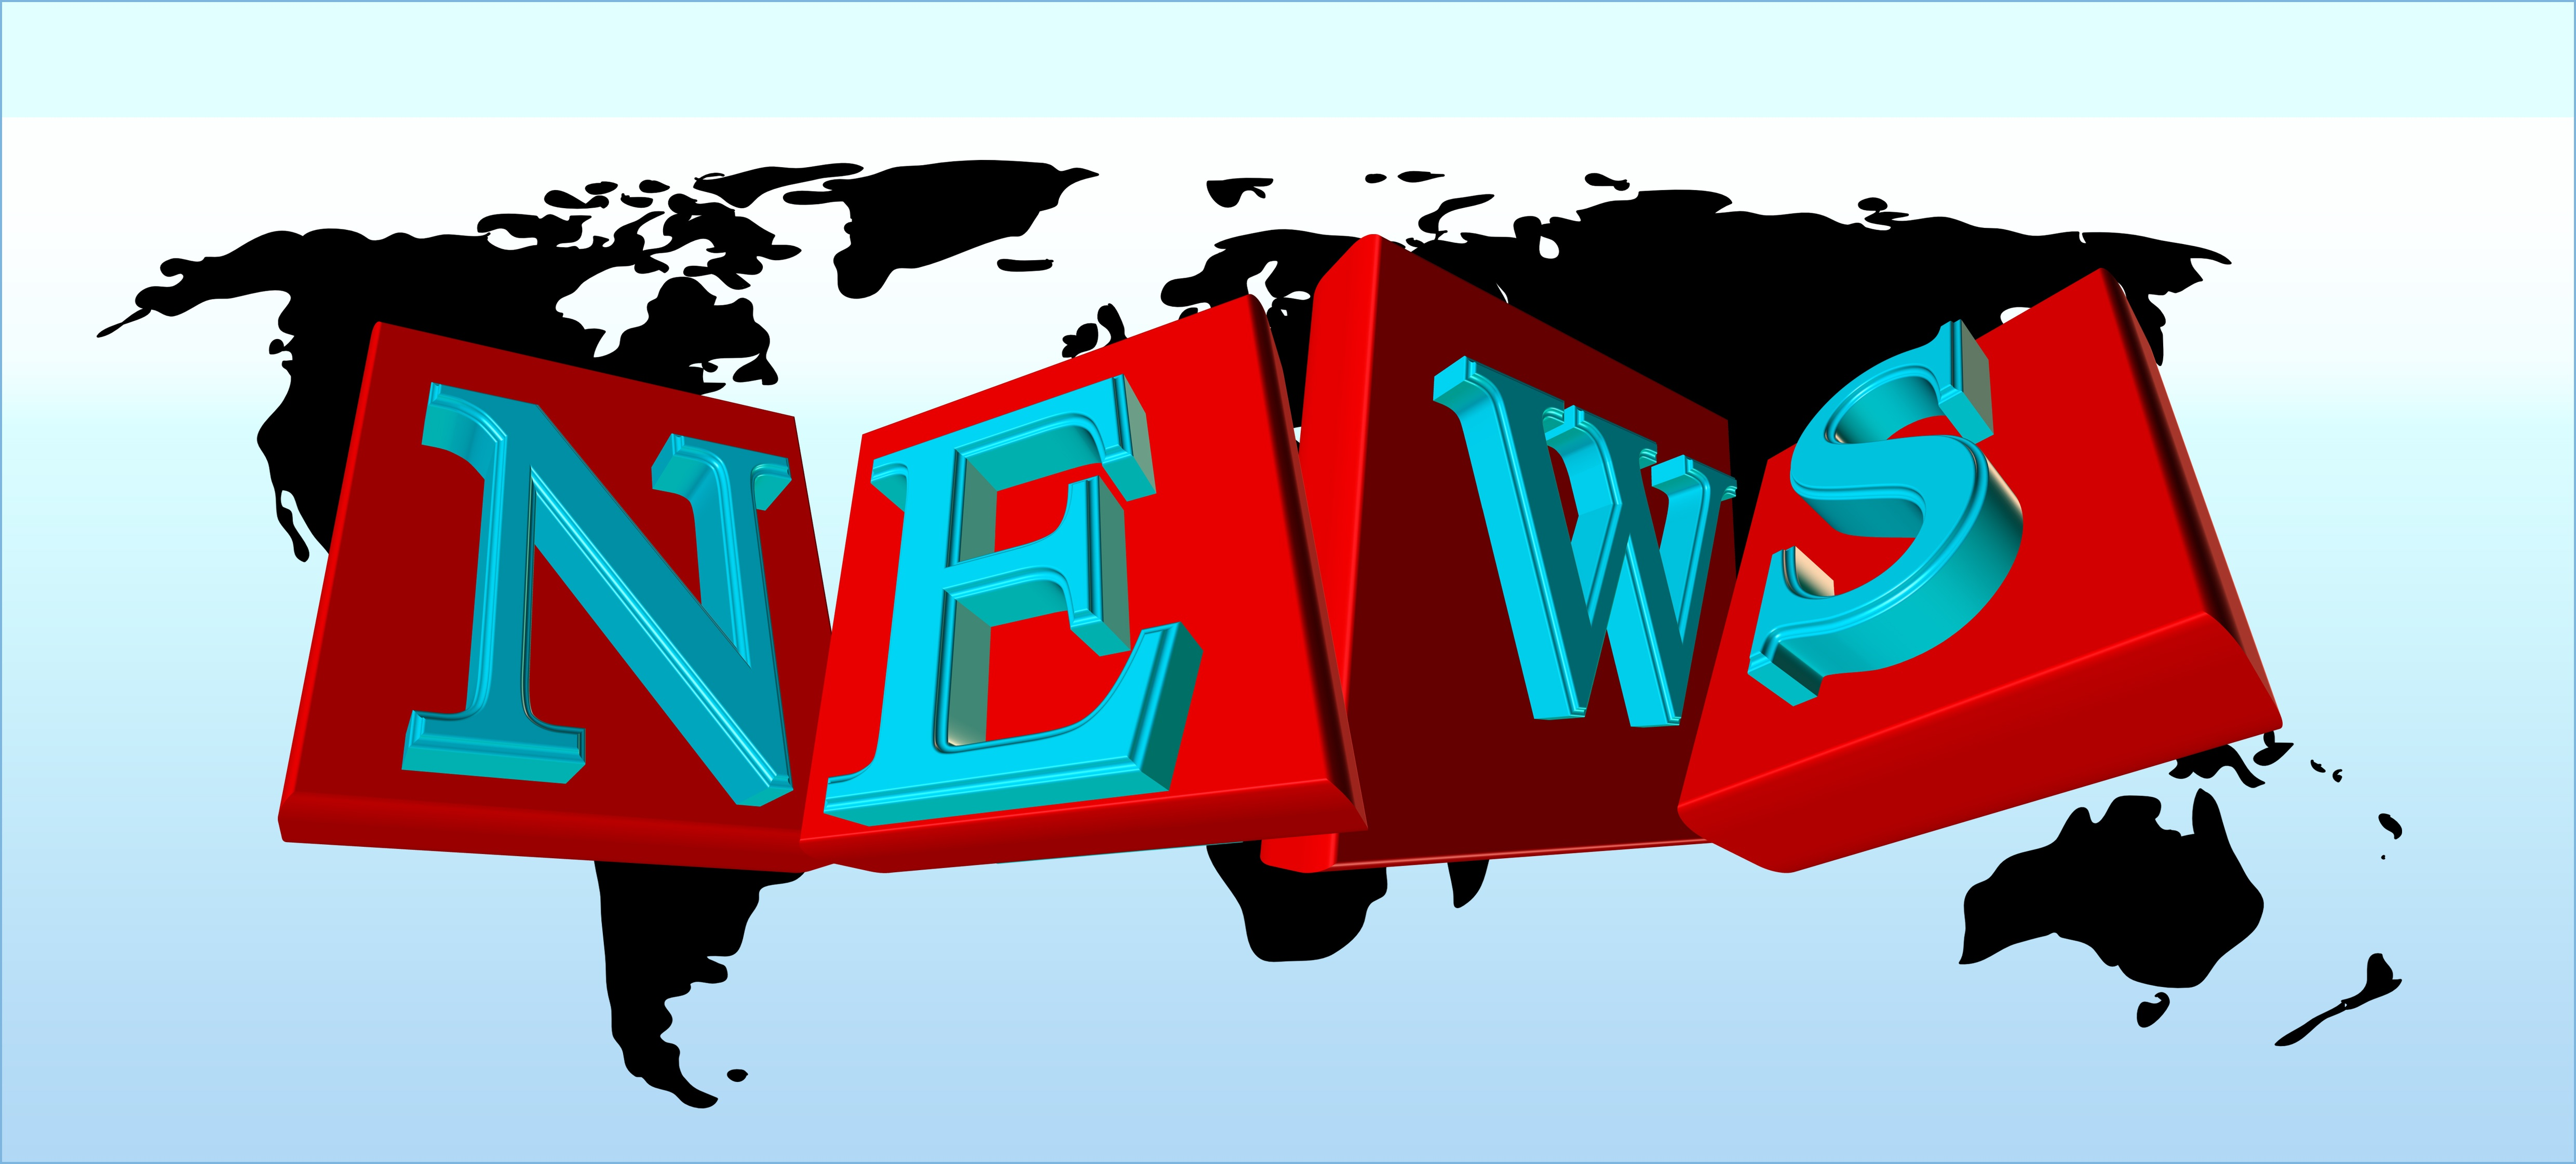 Trade Finance News & Updates Around The World